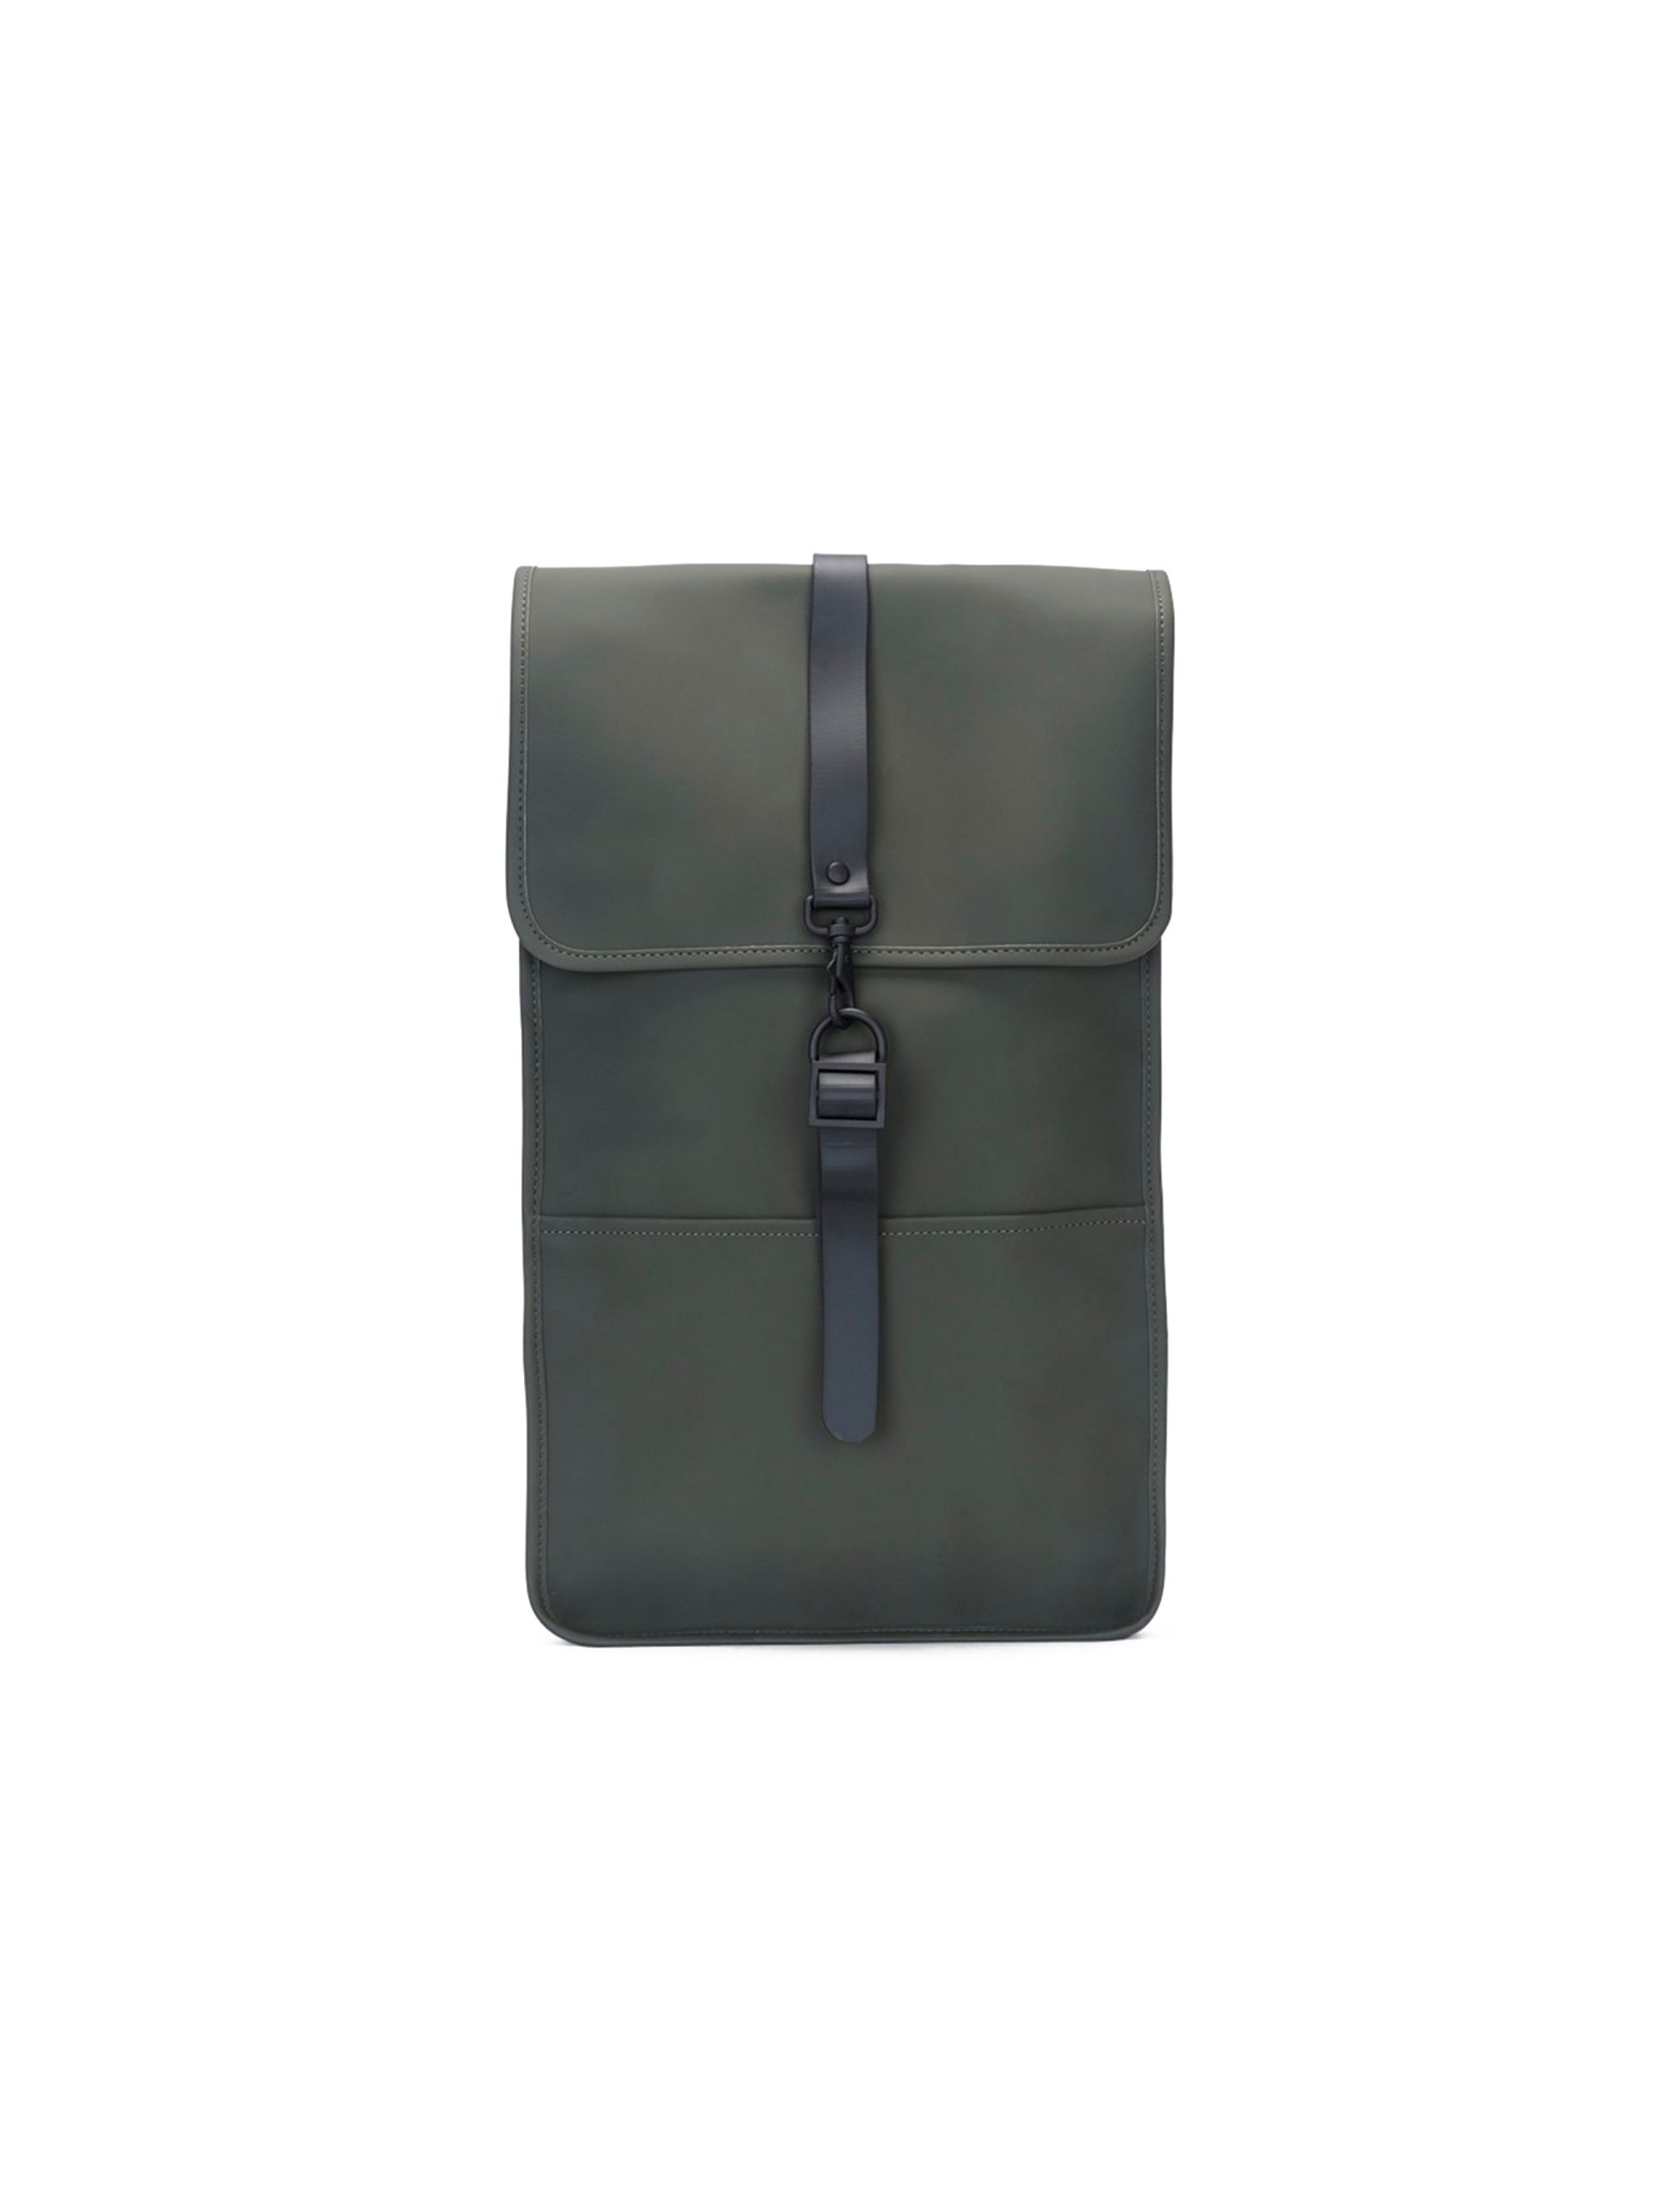 Rains Backpack Green | Wooden Store